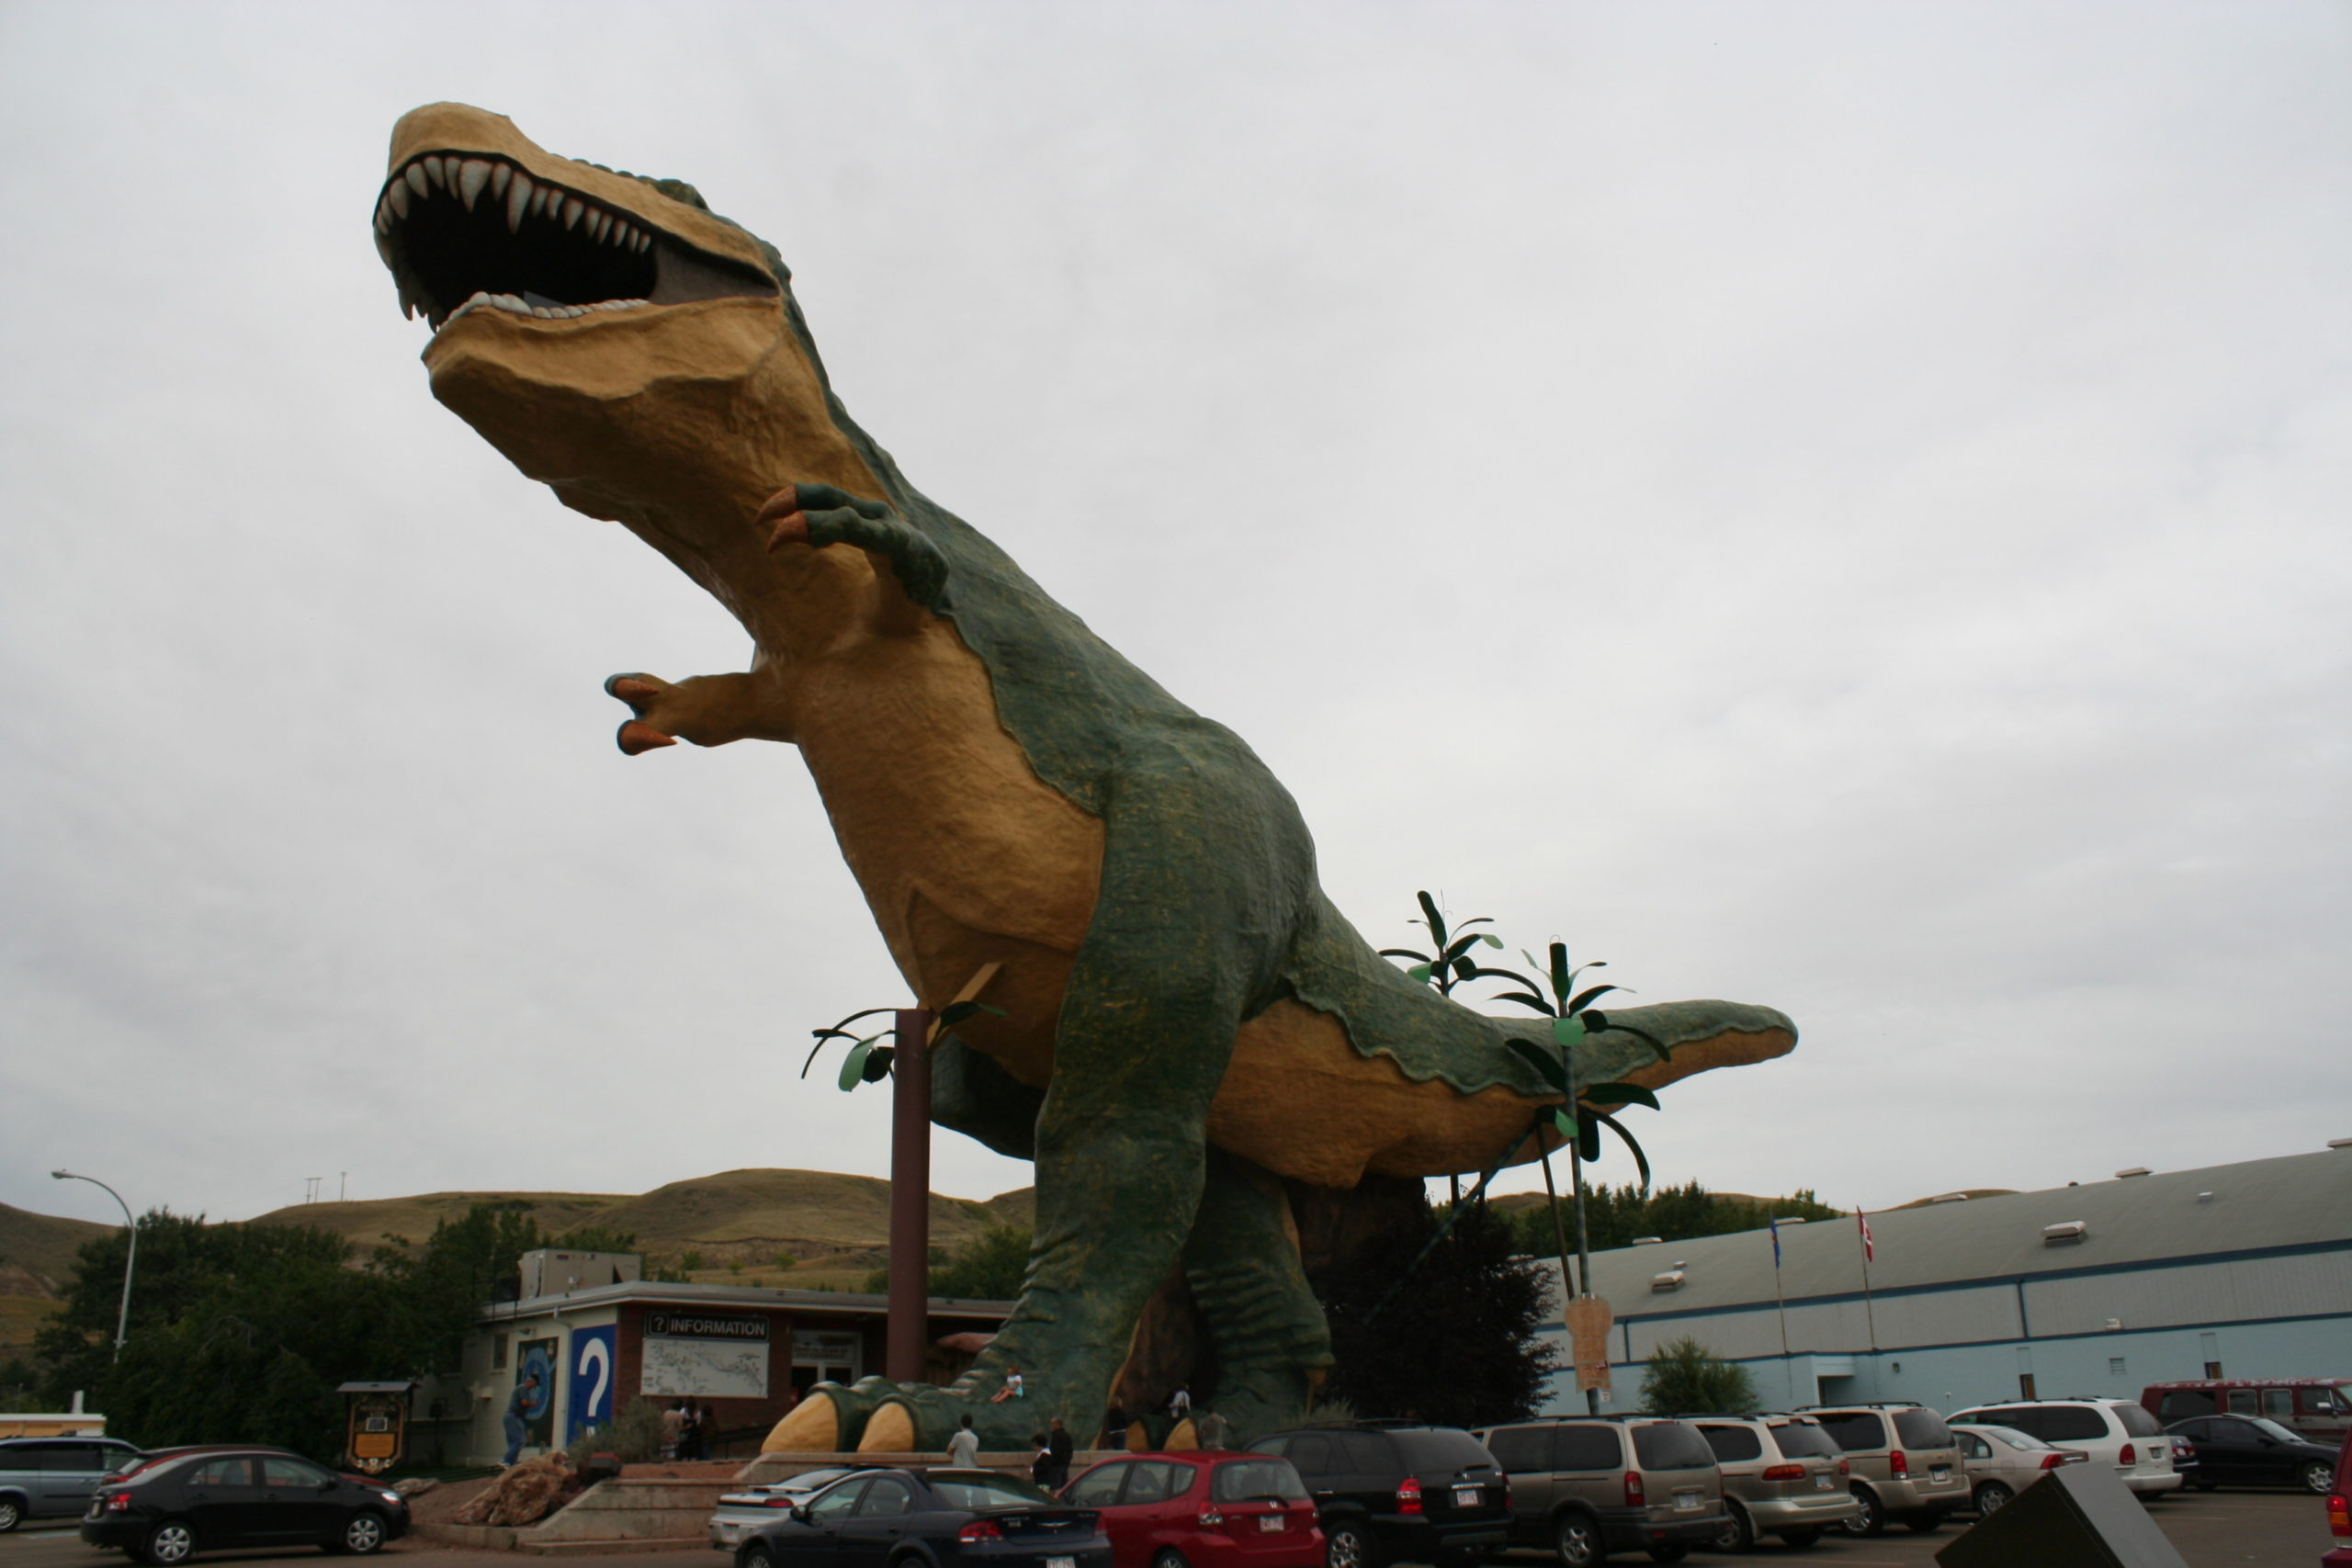 BIG NUMBERS TURN OUT AT THE ROYAL TYRRELL MUSEUM LAST WEEKEND